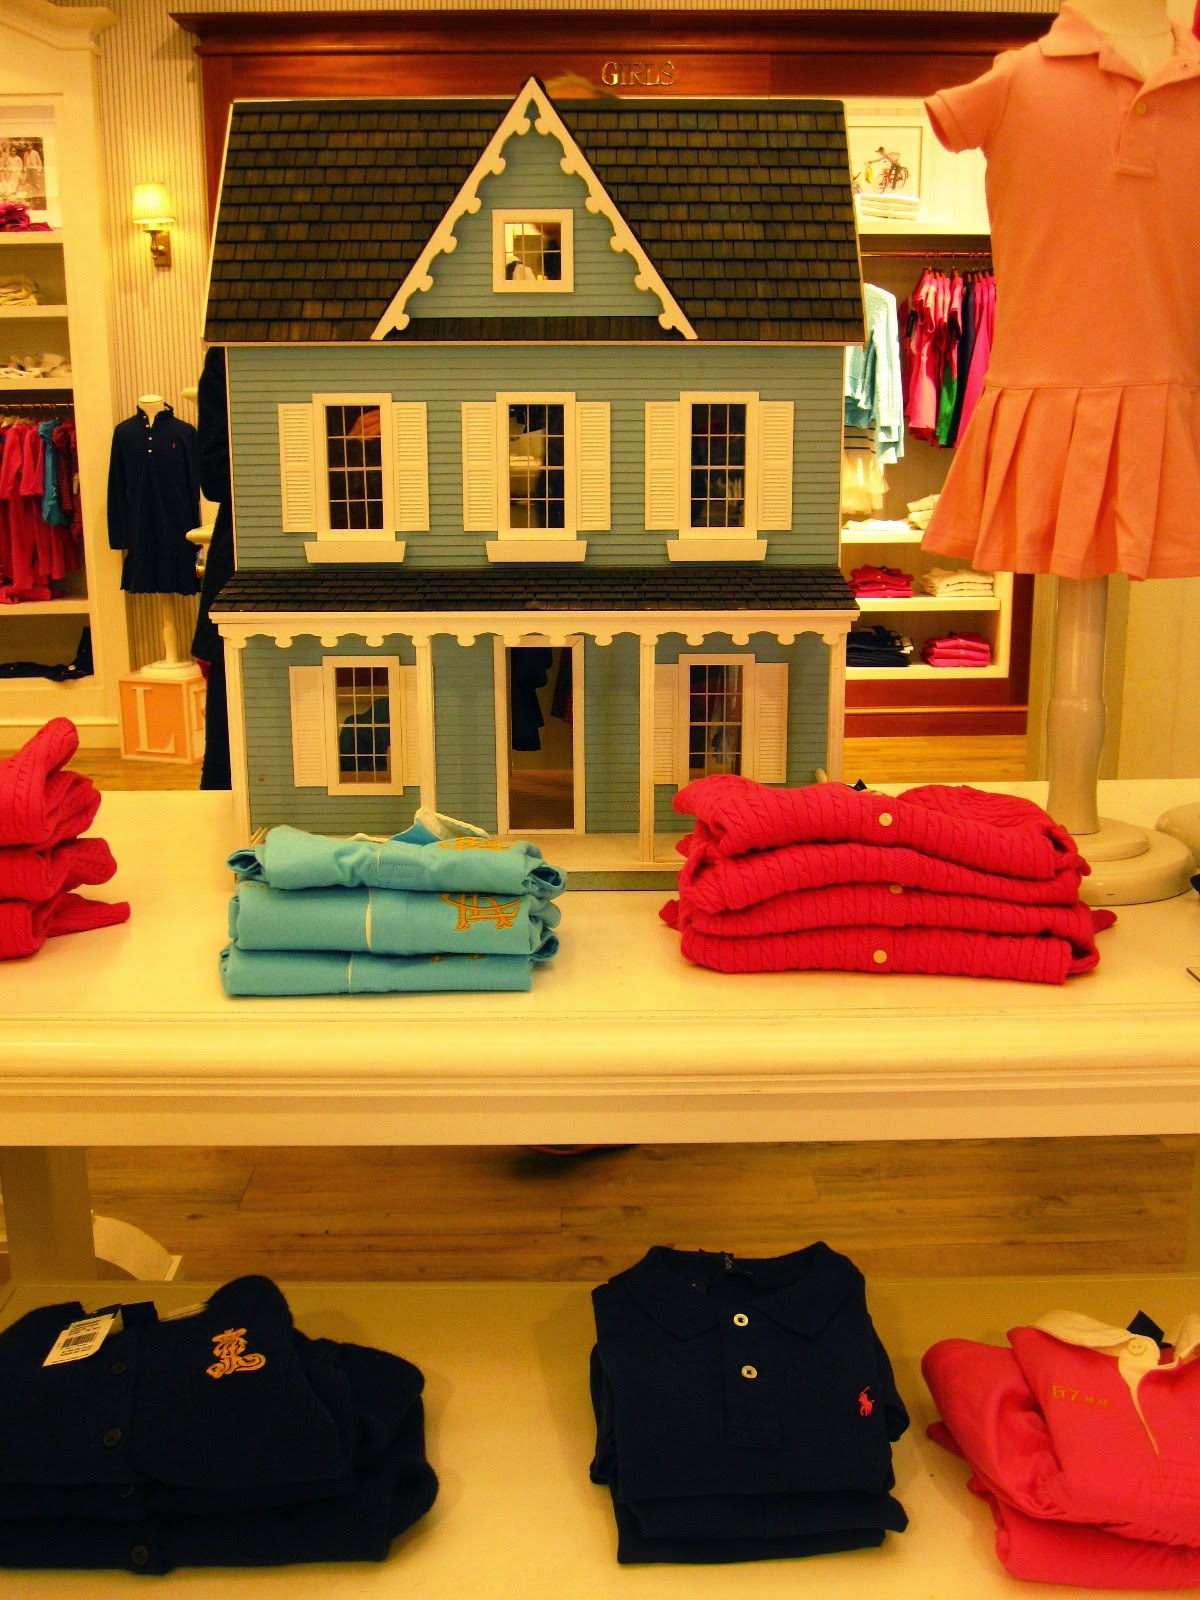 Dolls' house displayed in a children's wear department.